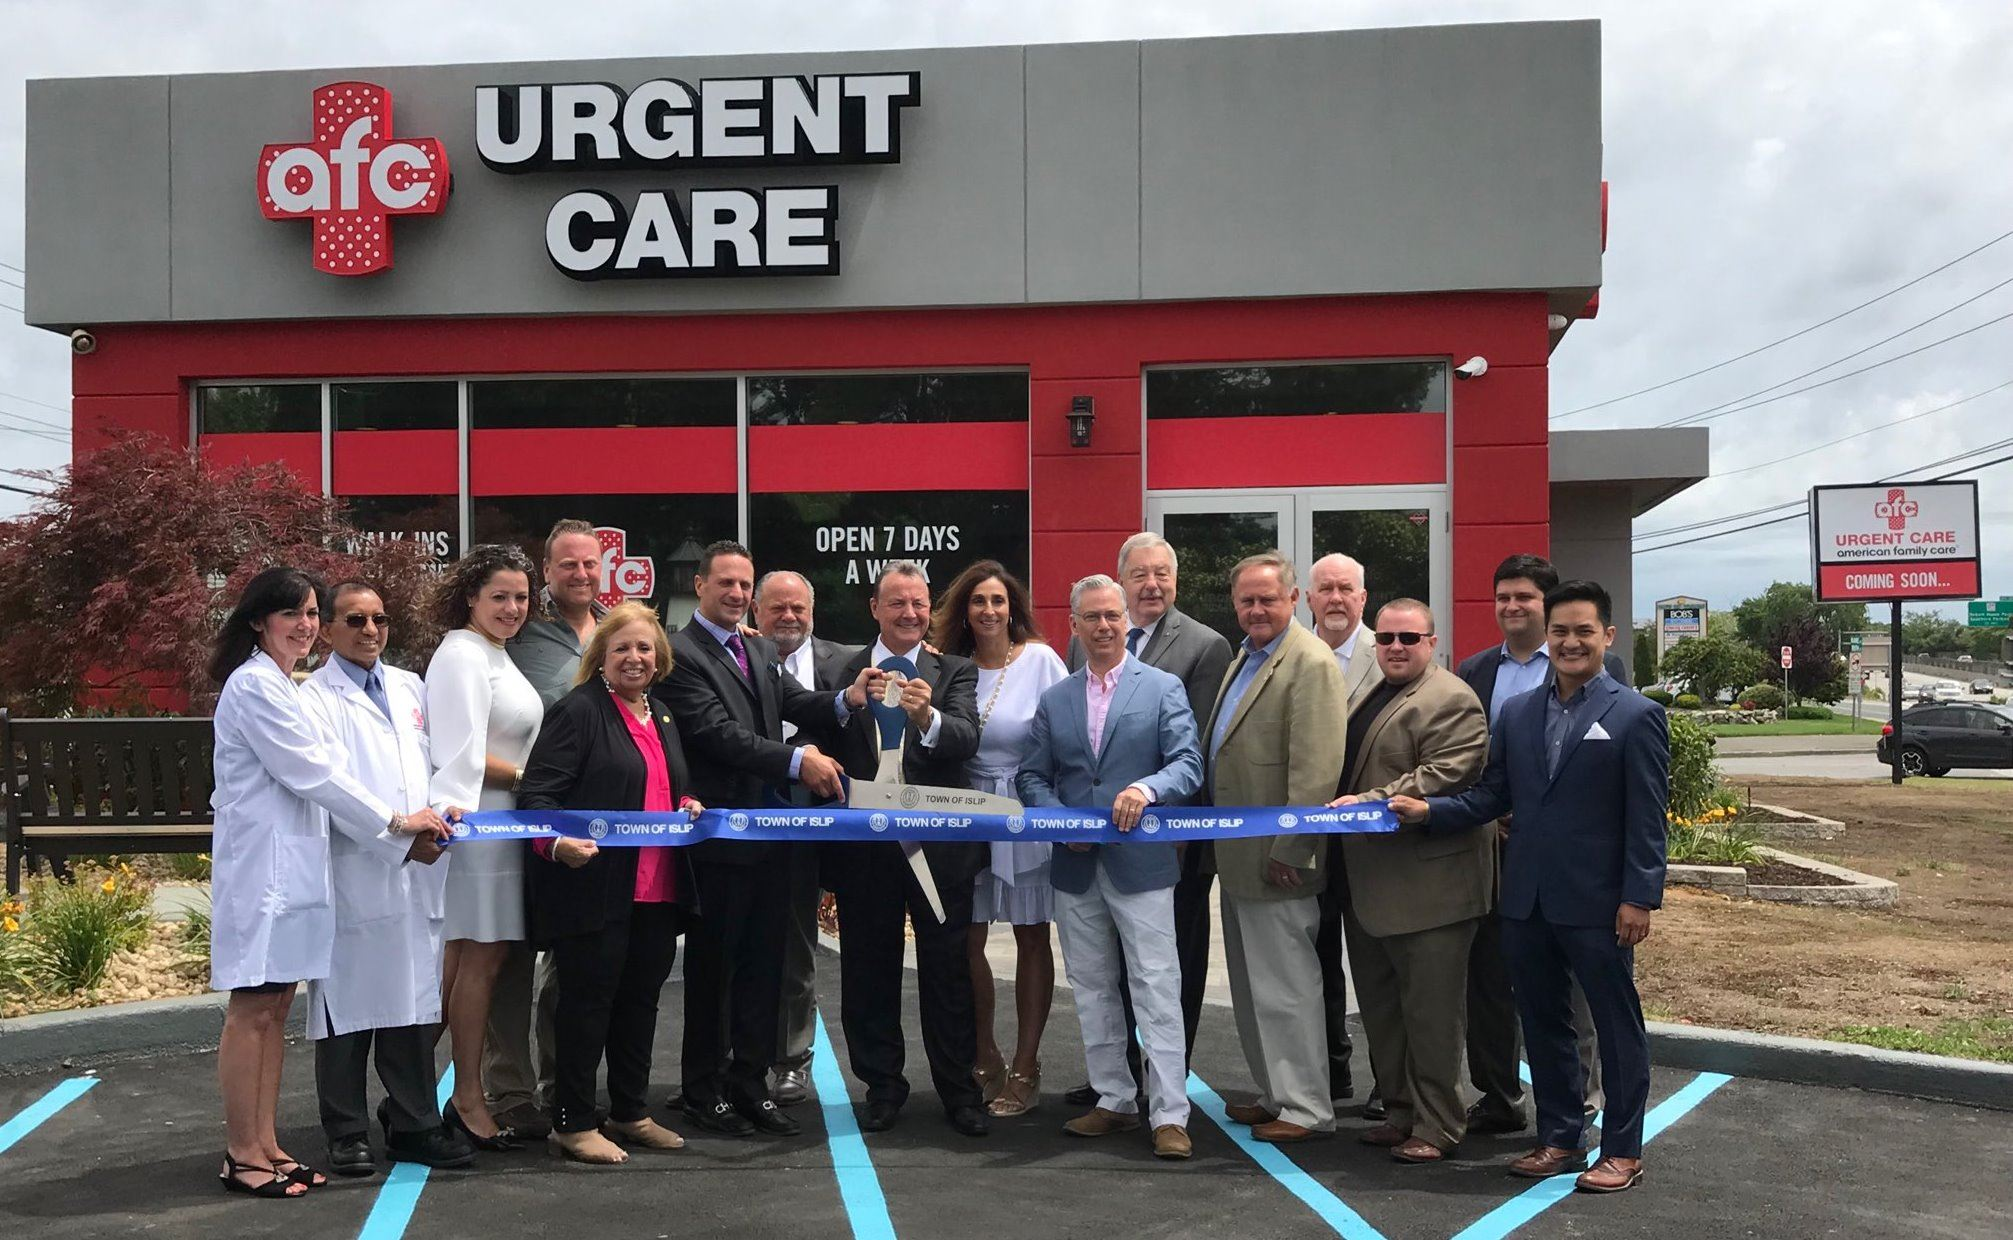 Urgent Care Ribbon Cutting Edited